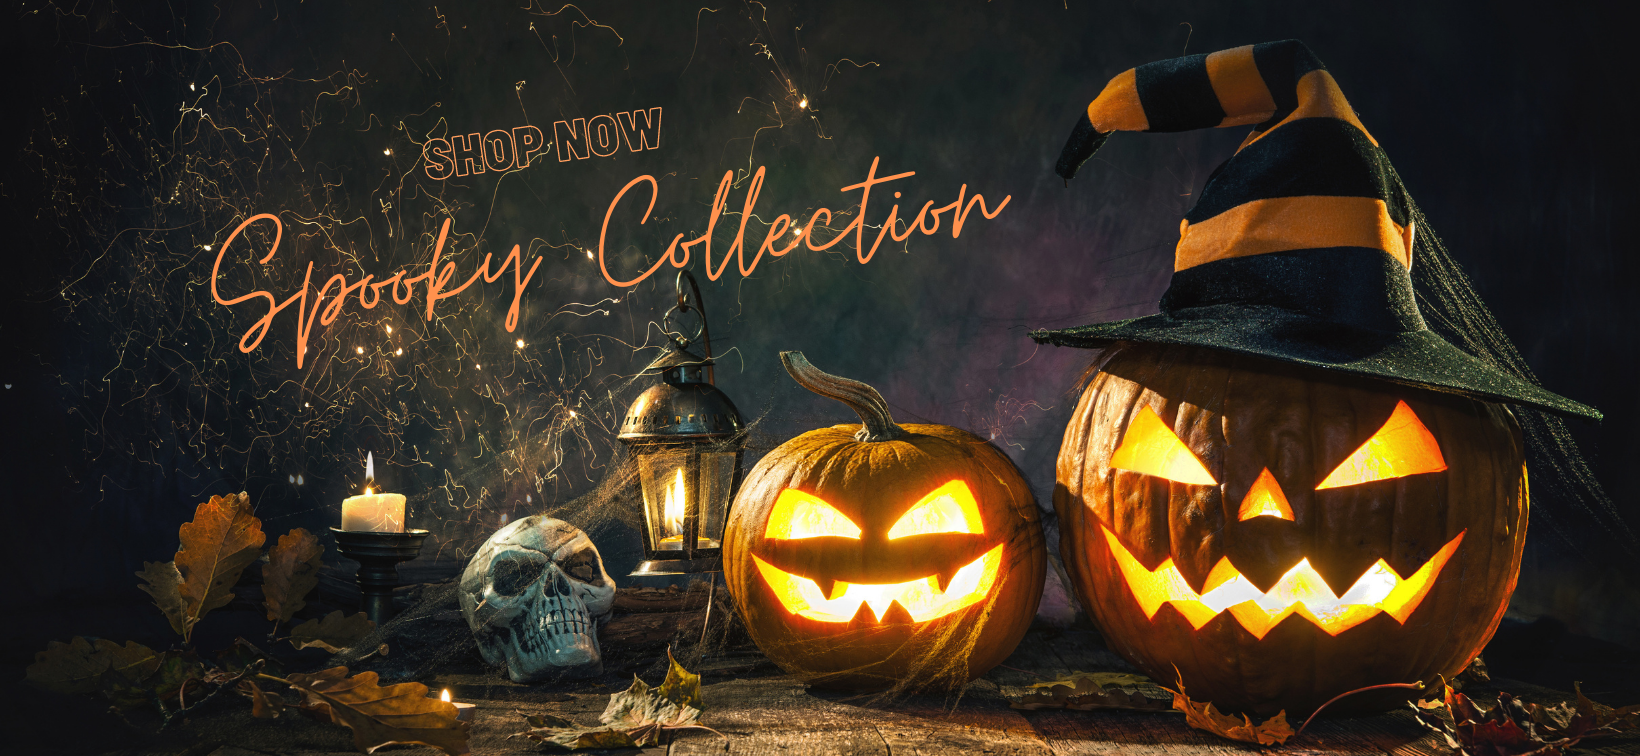 Spooky Collection